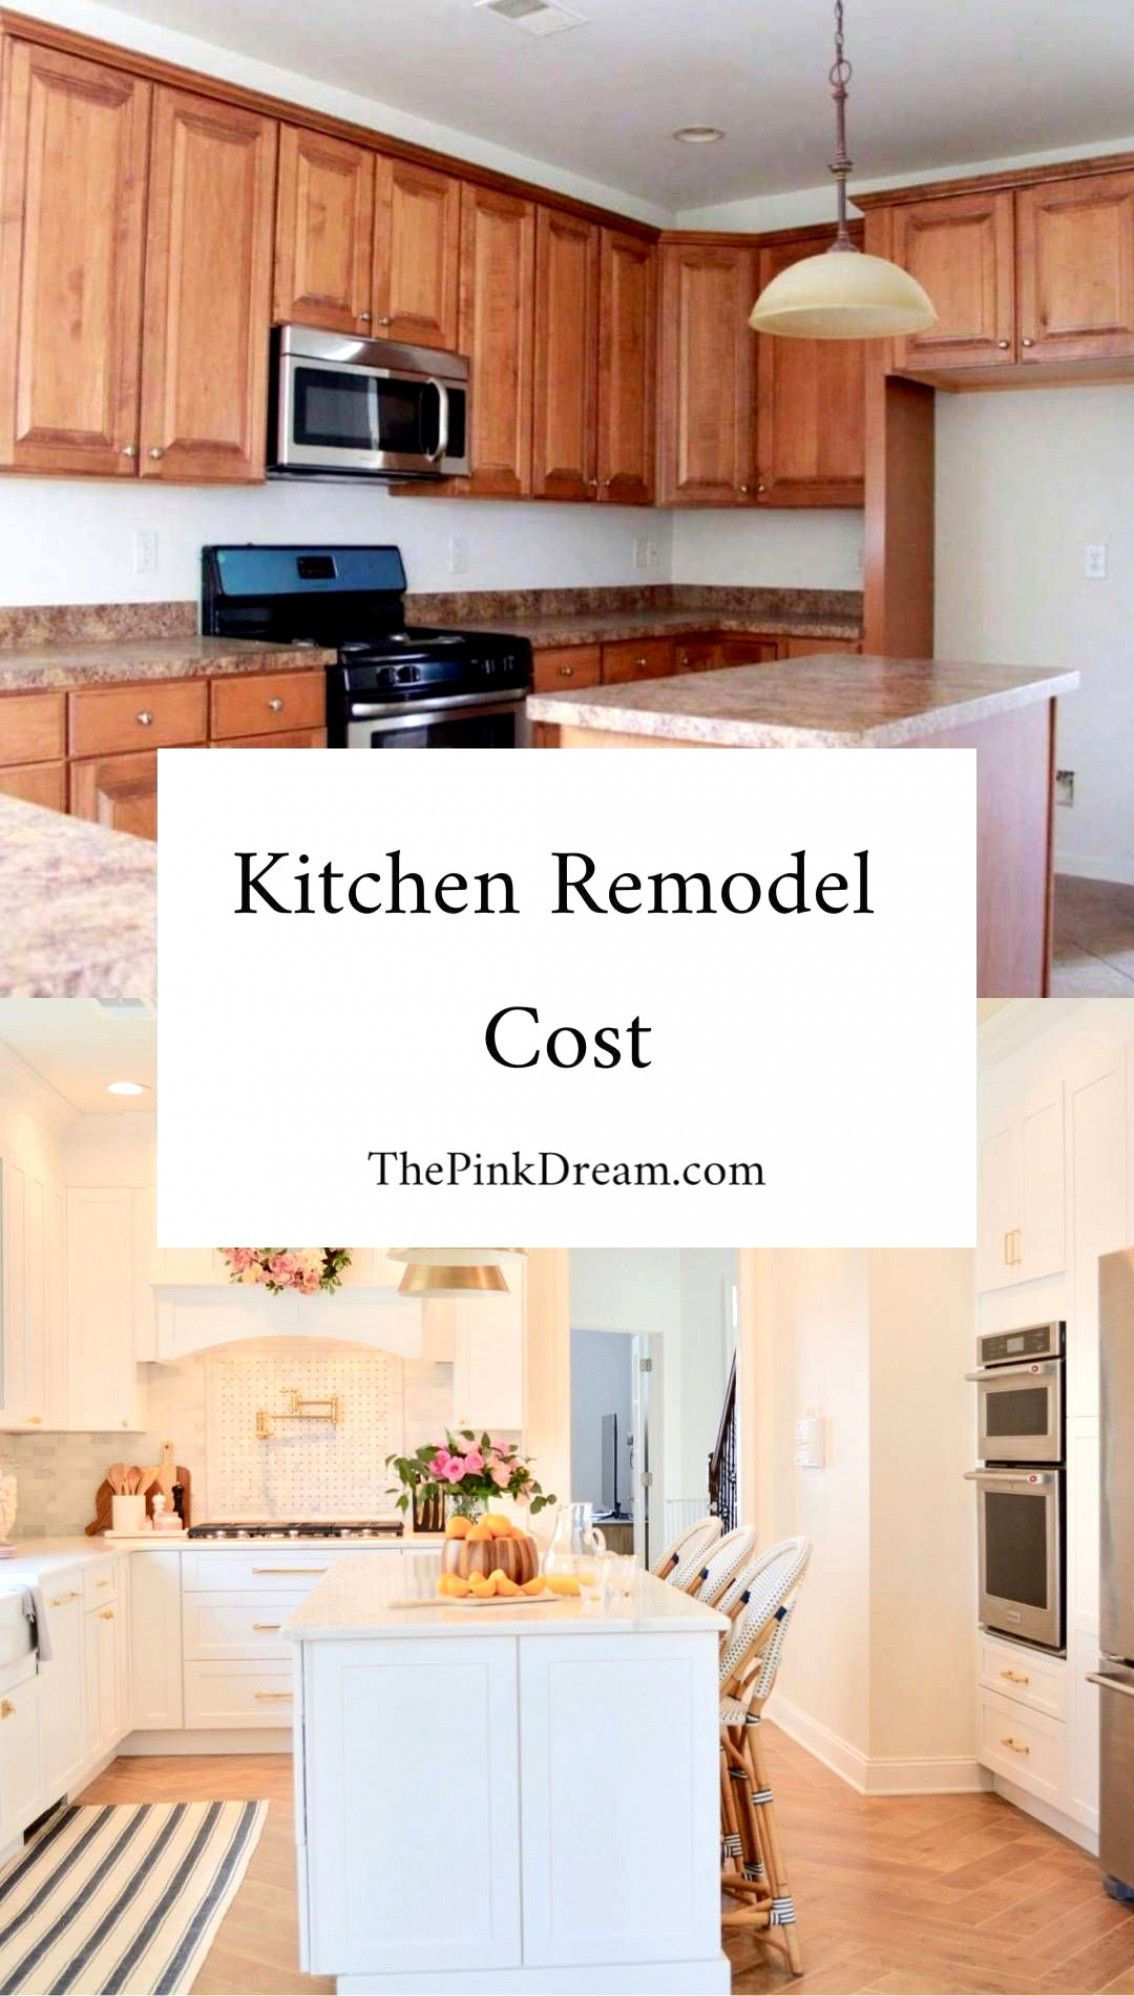 Our Kitchen Remodel Cost #Renovation | Kitchen renovation ...